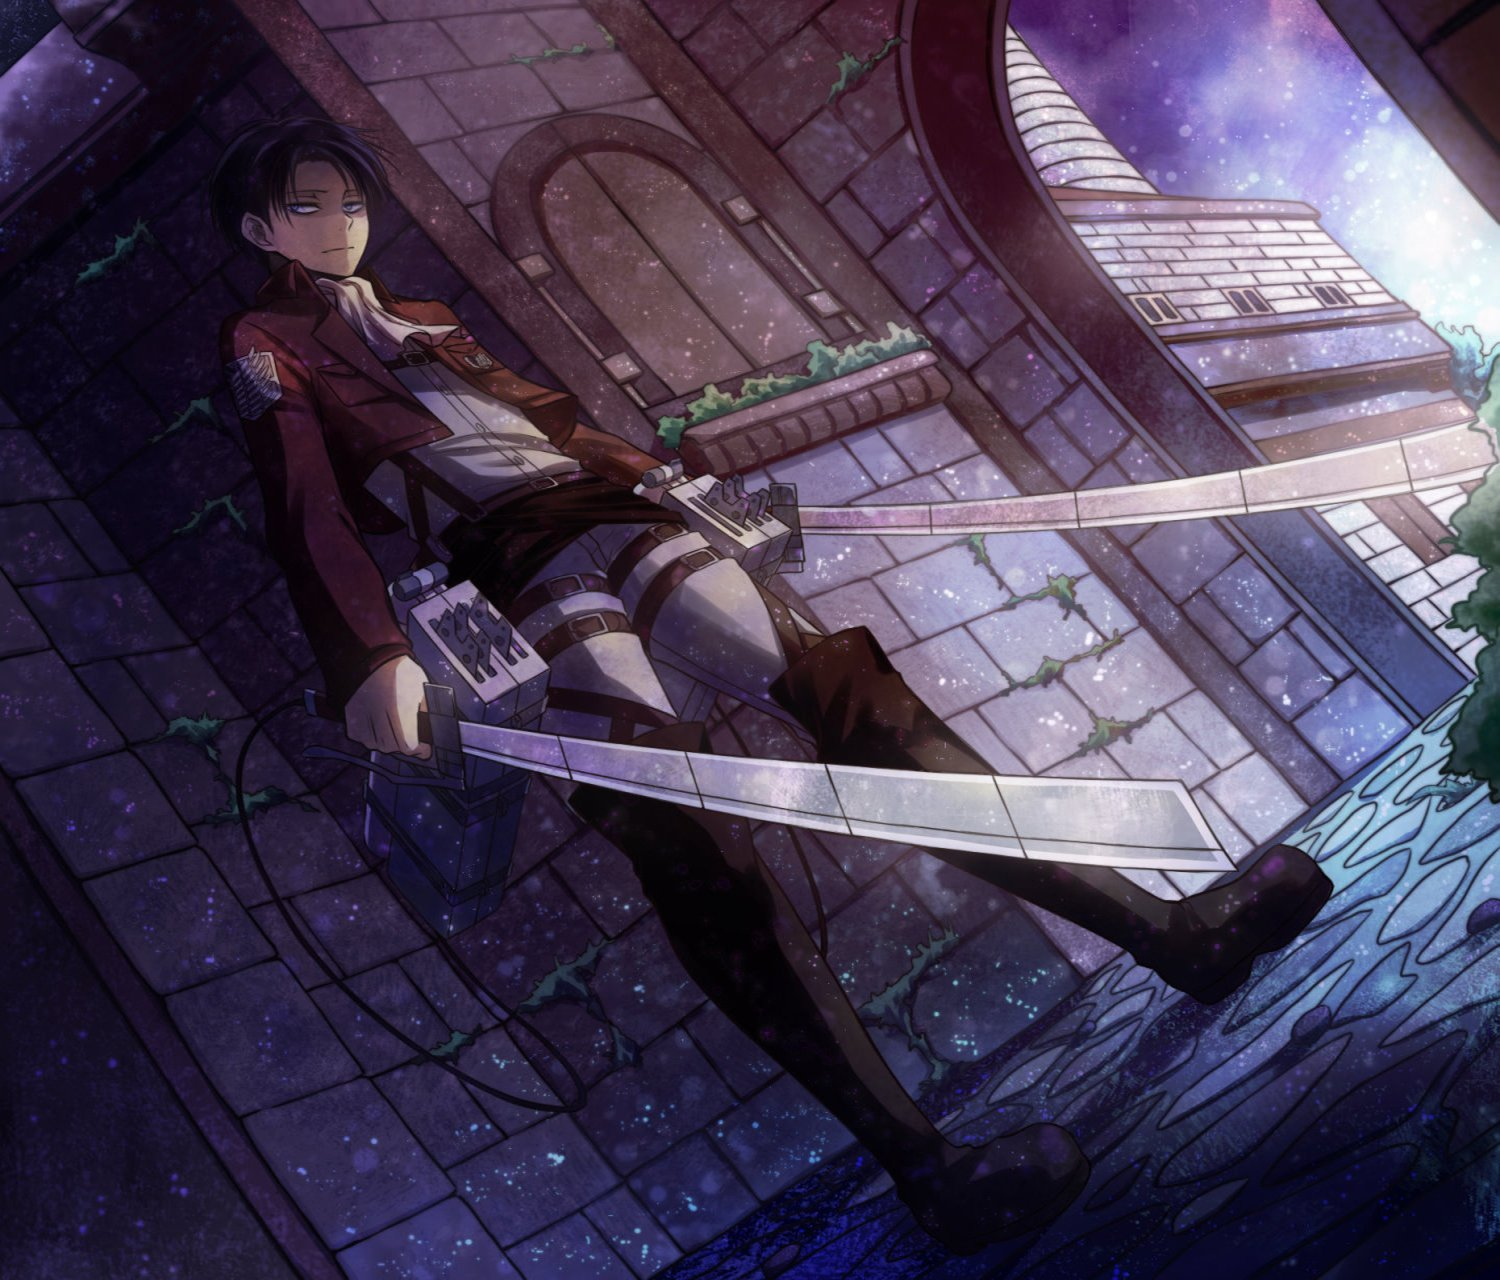 Levi Ackerman Wallpaper and Background Image | 1500x1280 ...